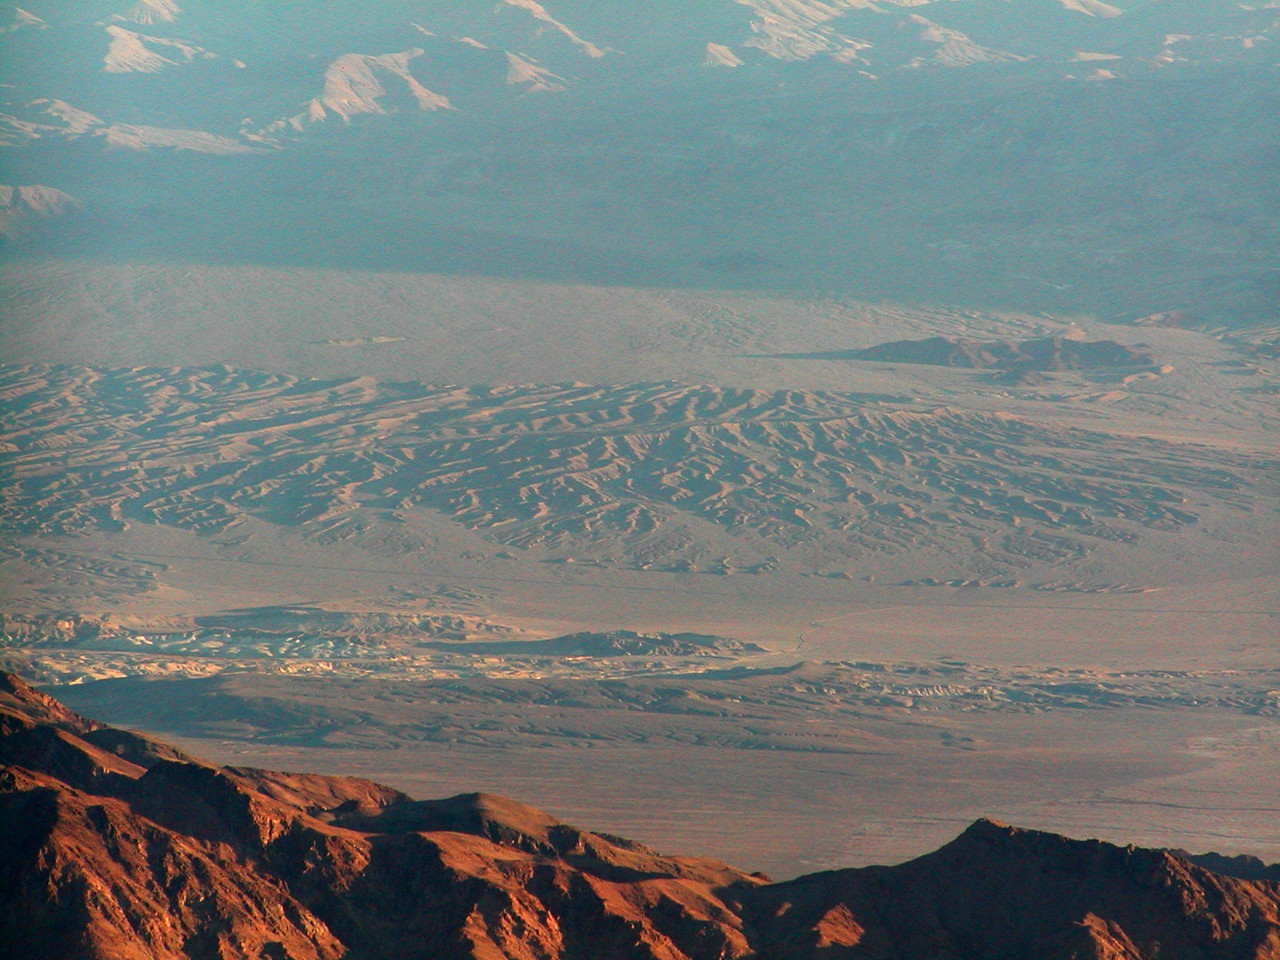 Looking at the sand dunes near Stovepipe Wells from Aguereberry Point at dawn